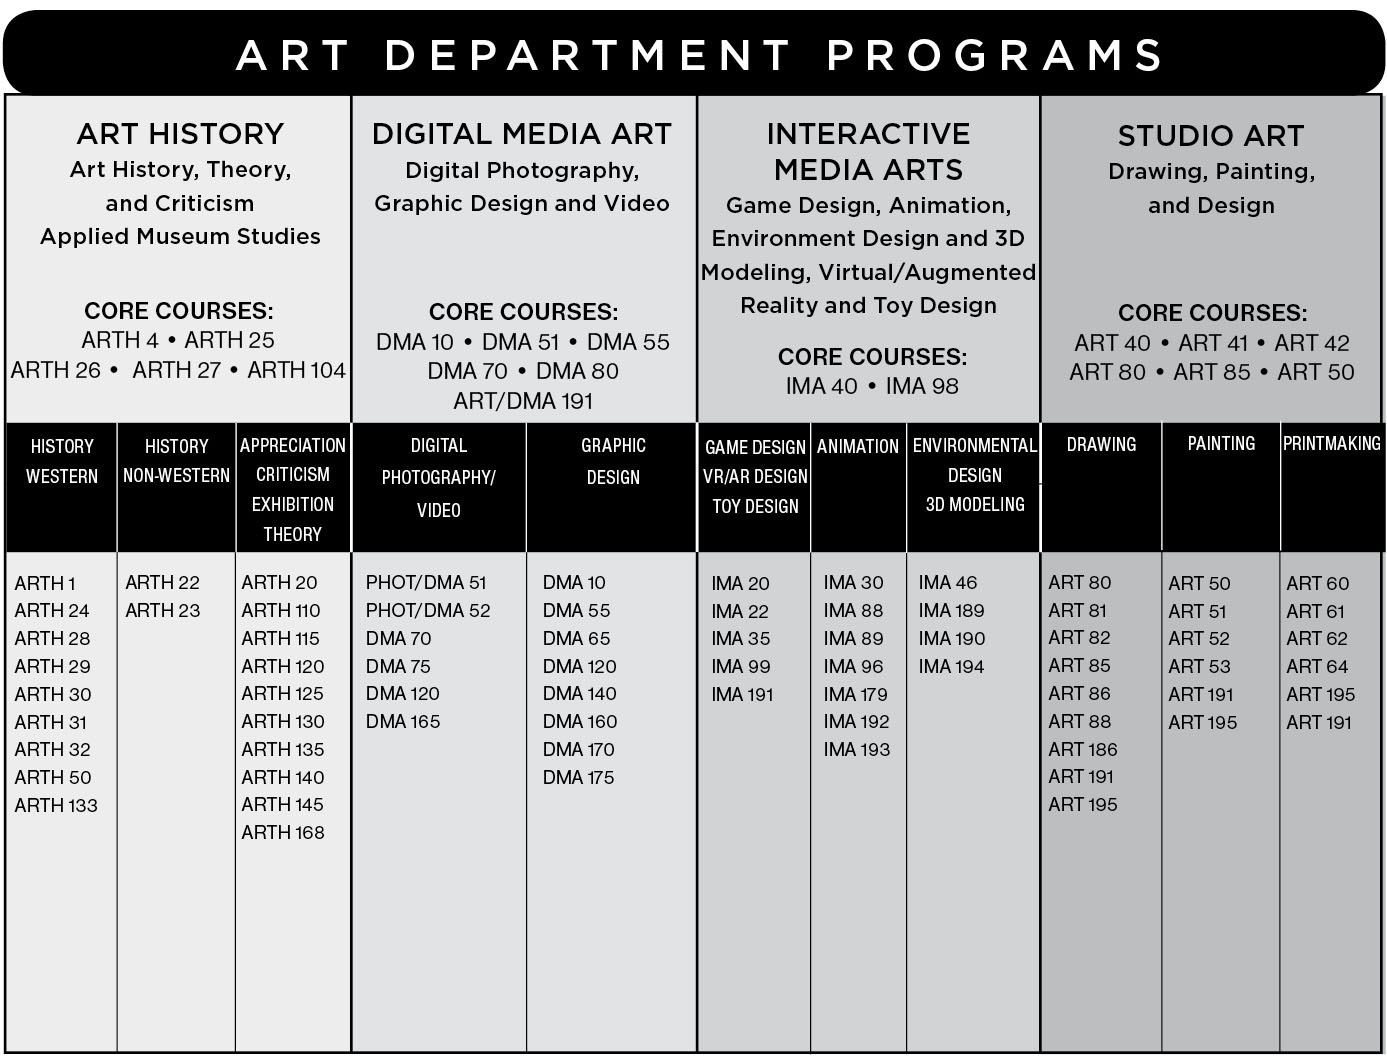 Graphical chart showing the programs and courses in the IVC art department.